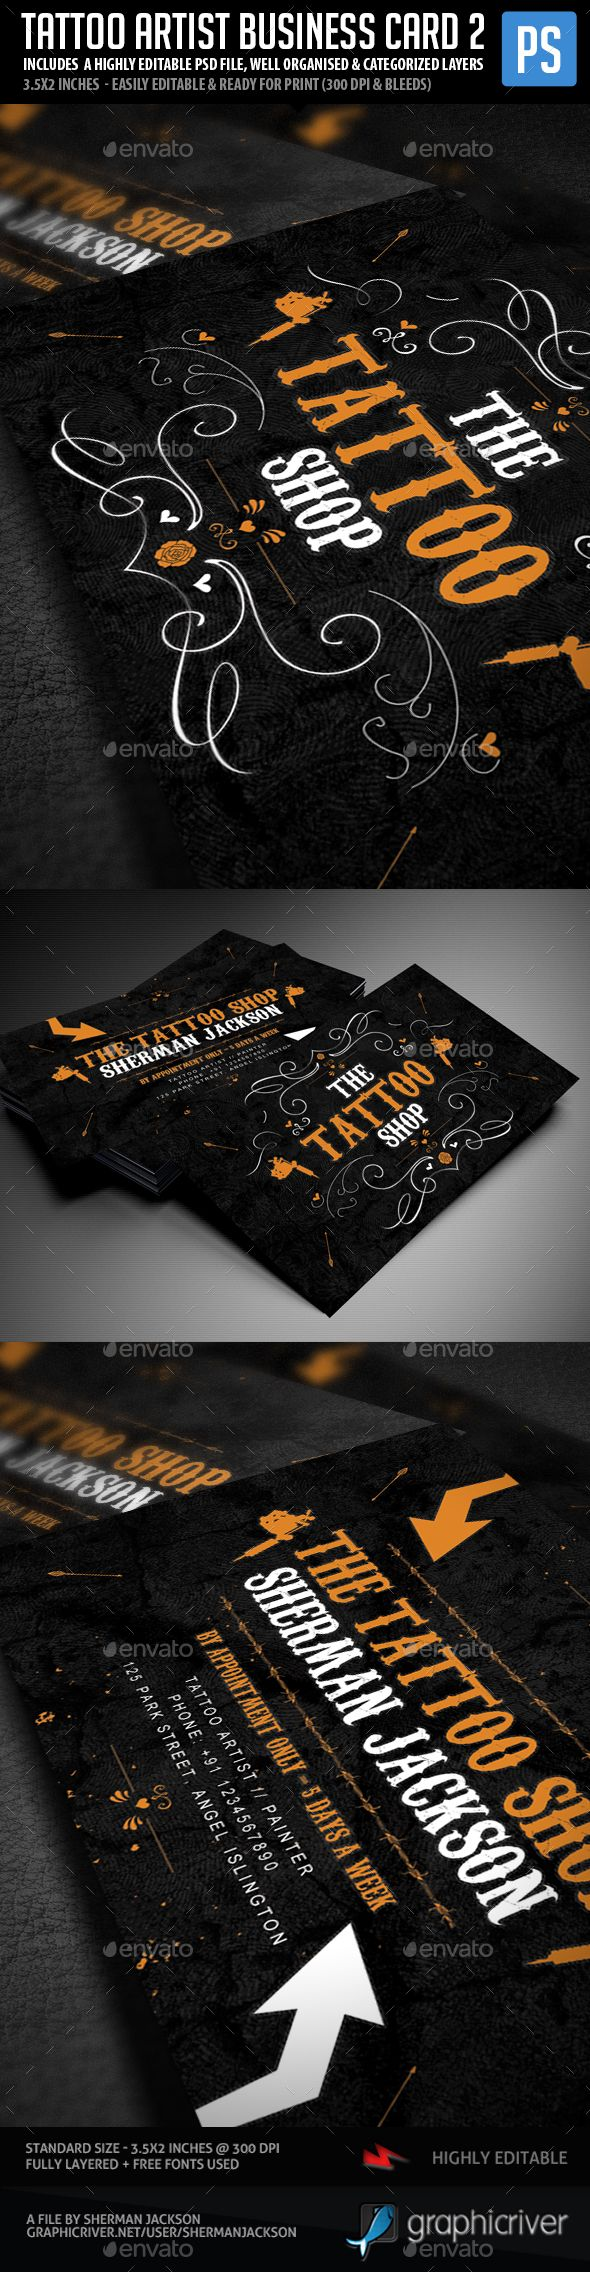 79 best tattoo logo images on pinterest graph design infographic tattoo artist business card design template v2 industry specific business card template psd flashek